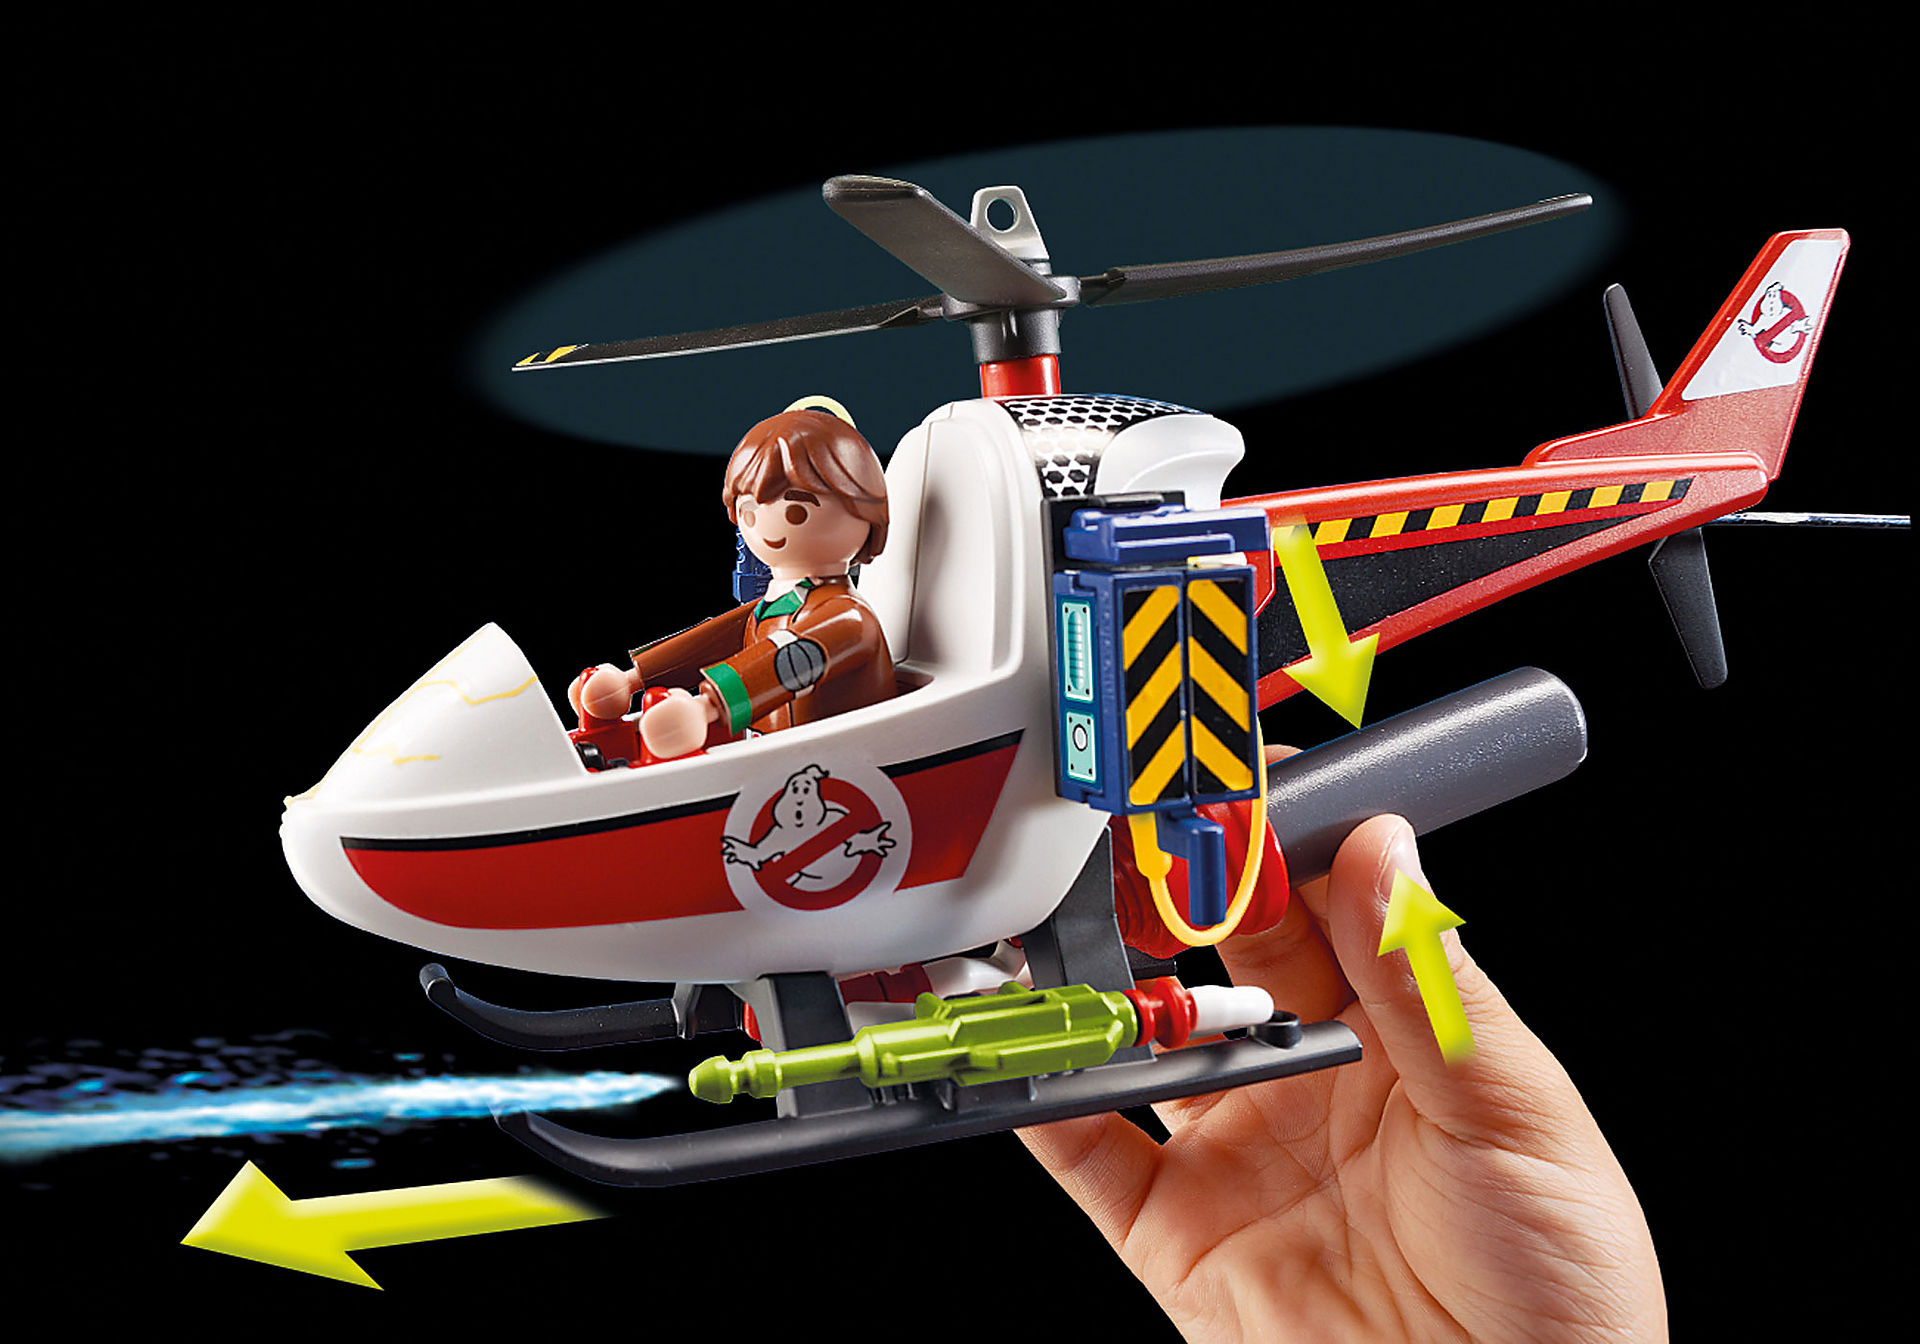 http://media.playmobil.com/i/playmobil/9385_product_extra1/Δρ. Βένκμαν με ελικόπτερο